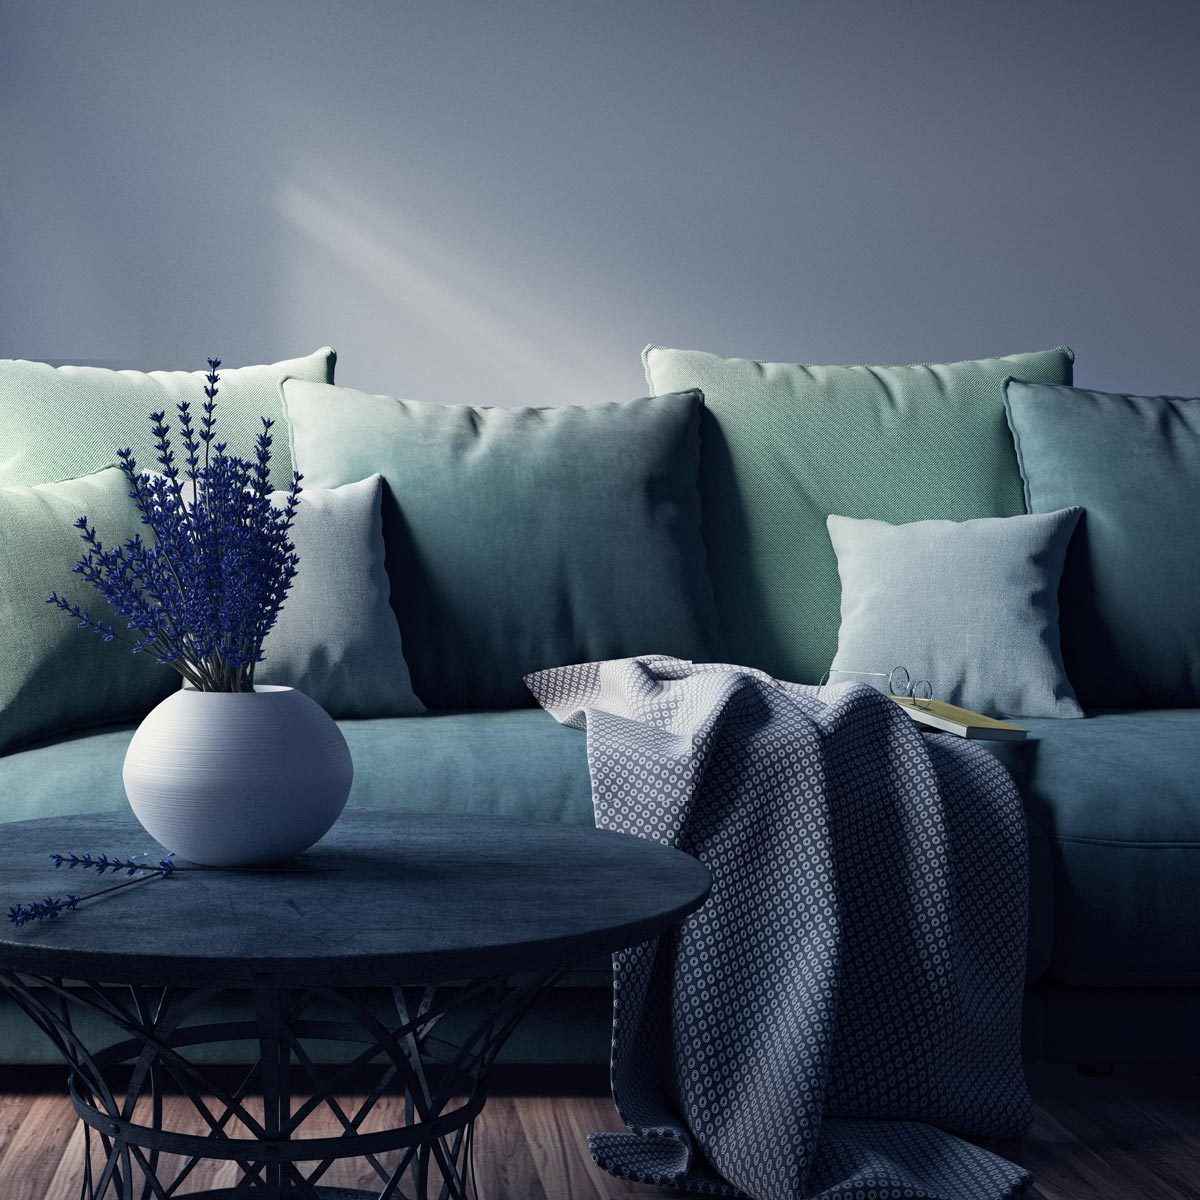 ways to arrange pillows on a couch